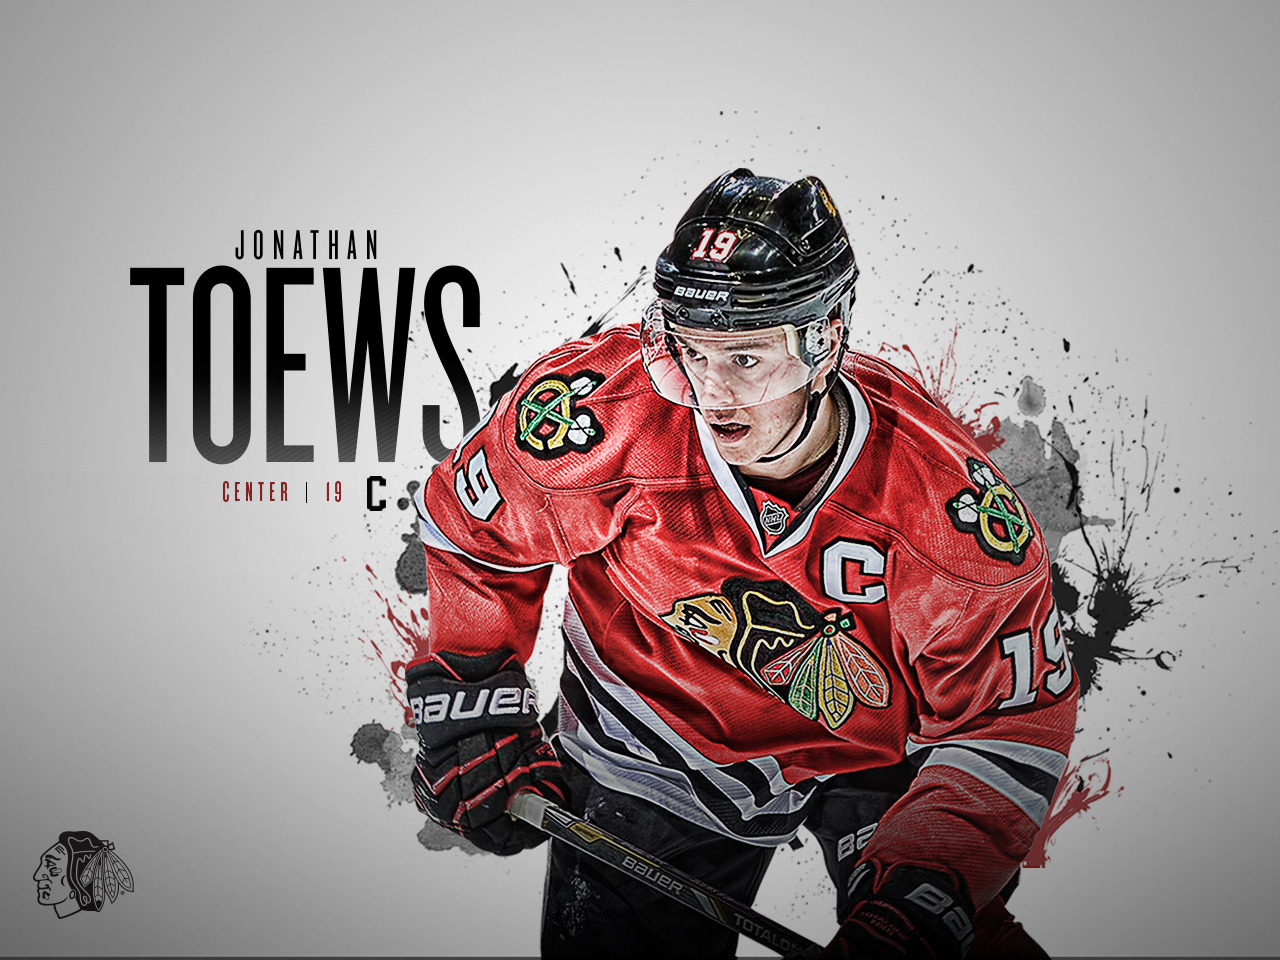 jonathan toews wallpapers high resolution and quality download